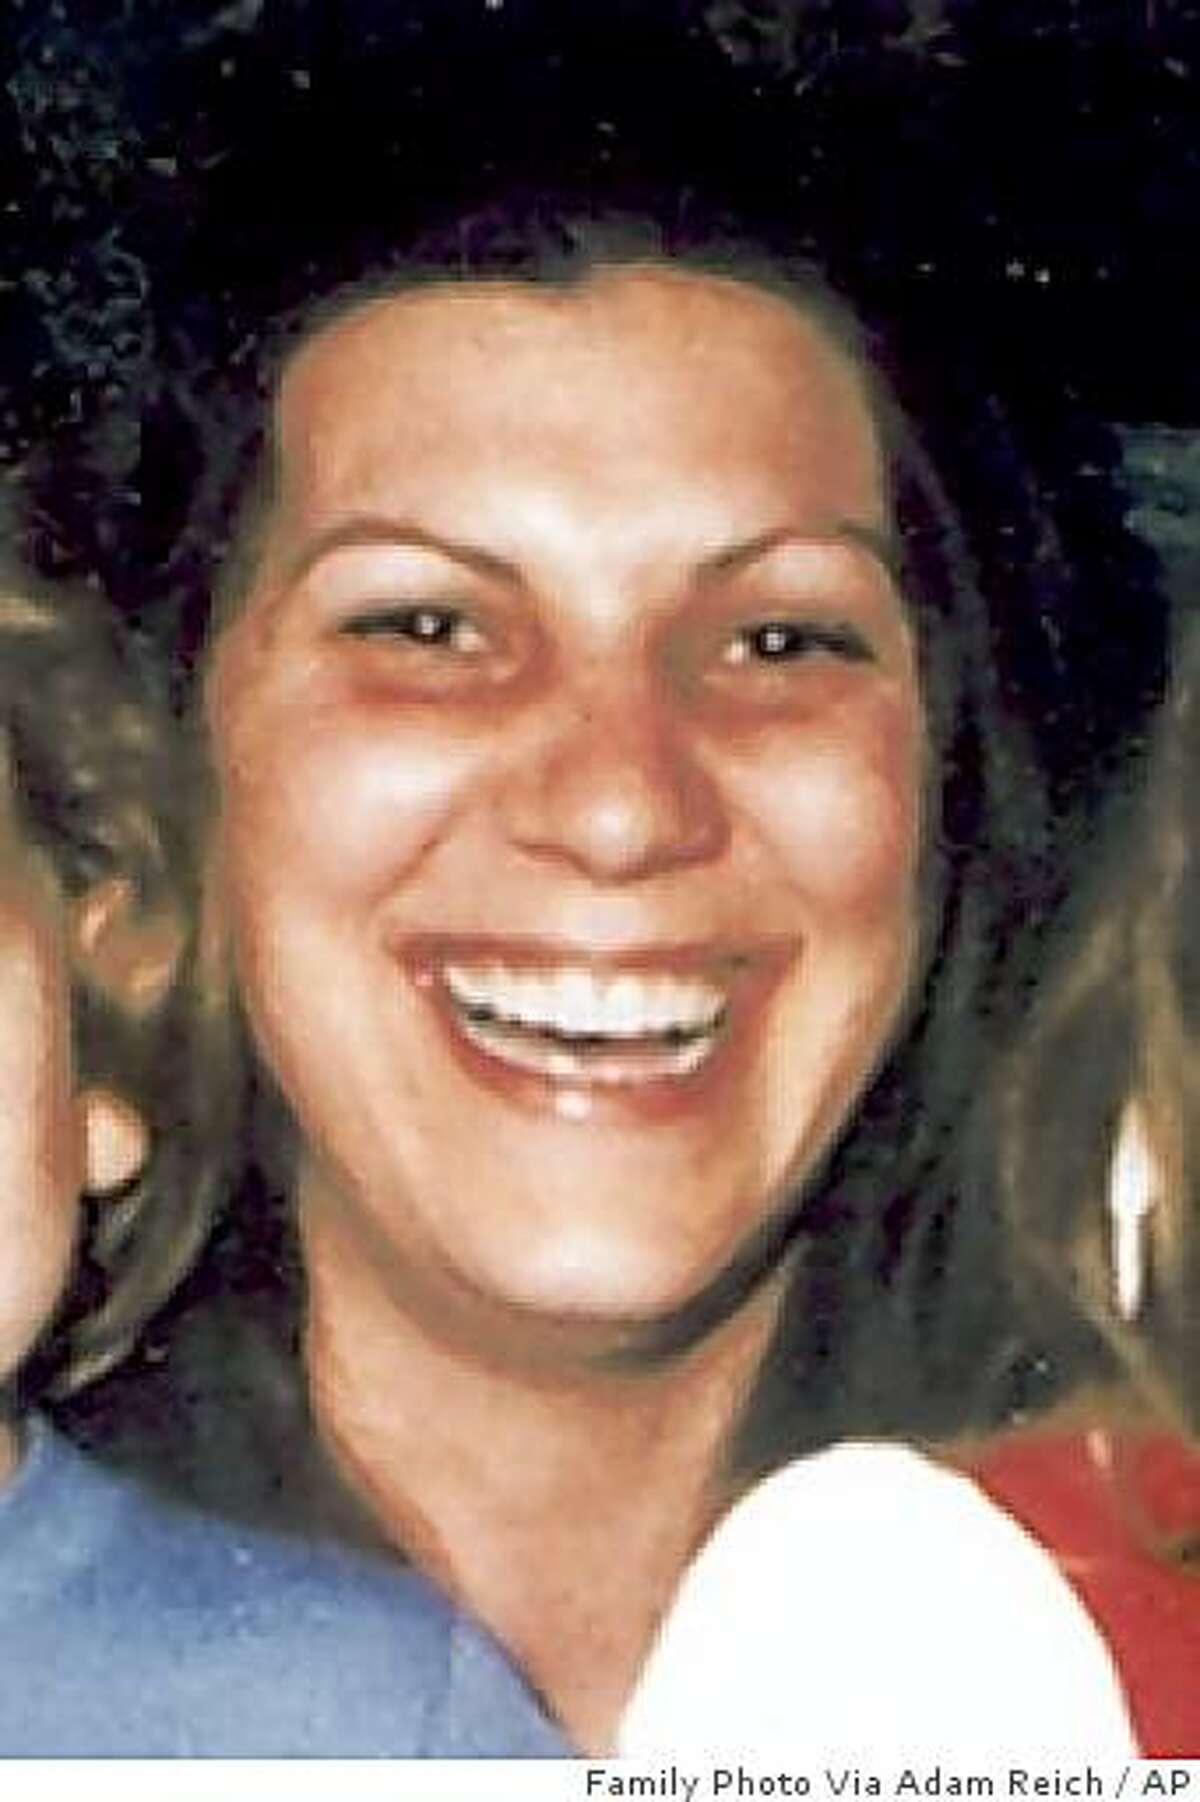 This family photo released by her lawyer Adam Reich shows Connie Keel in 1980. Keel was convicted of first-degree murder when she was 21 and sentenced to 25 years to life in prison. After 29 years in prison, she is trying to win release with the help of University of Southern California law student Adam Reich.